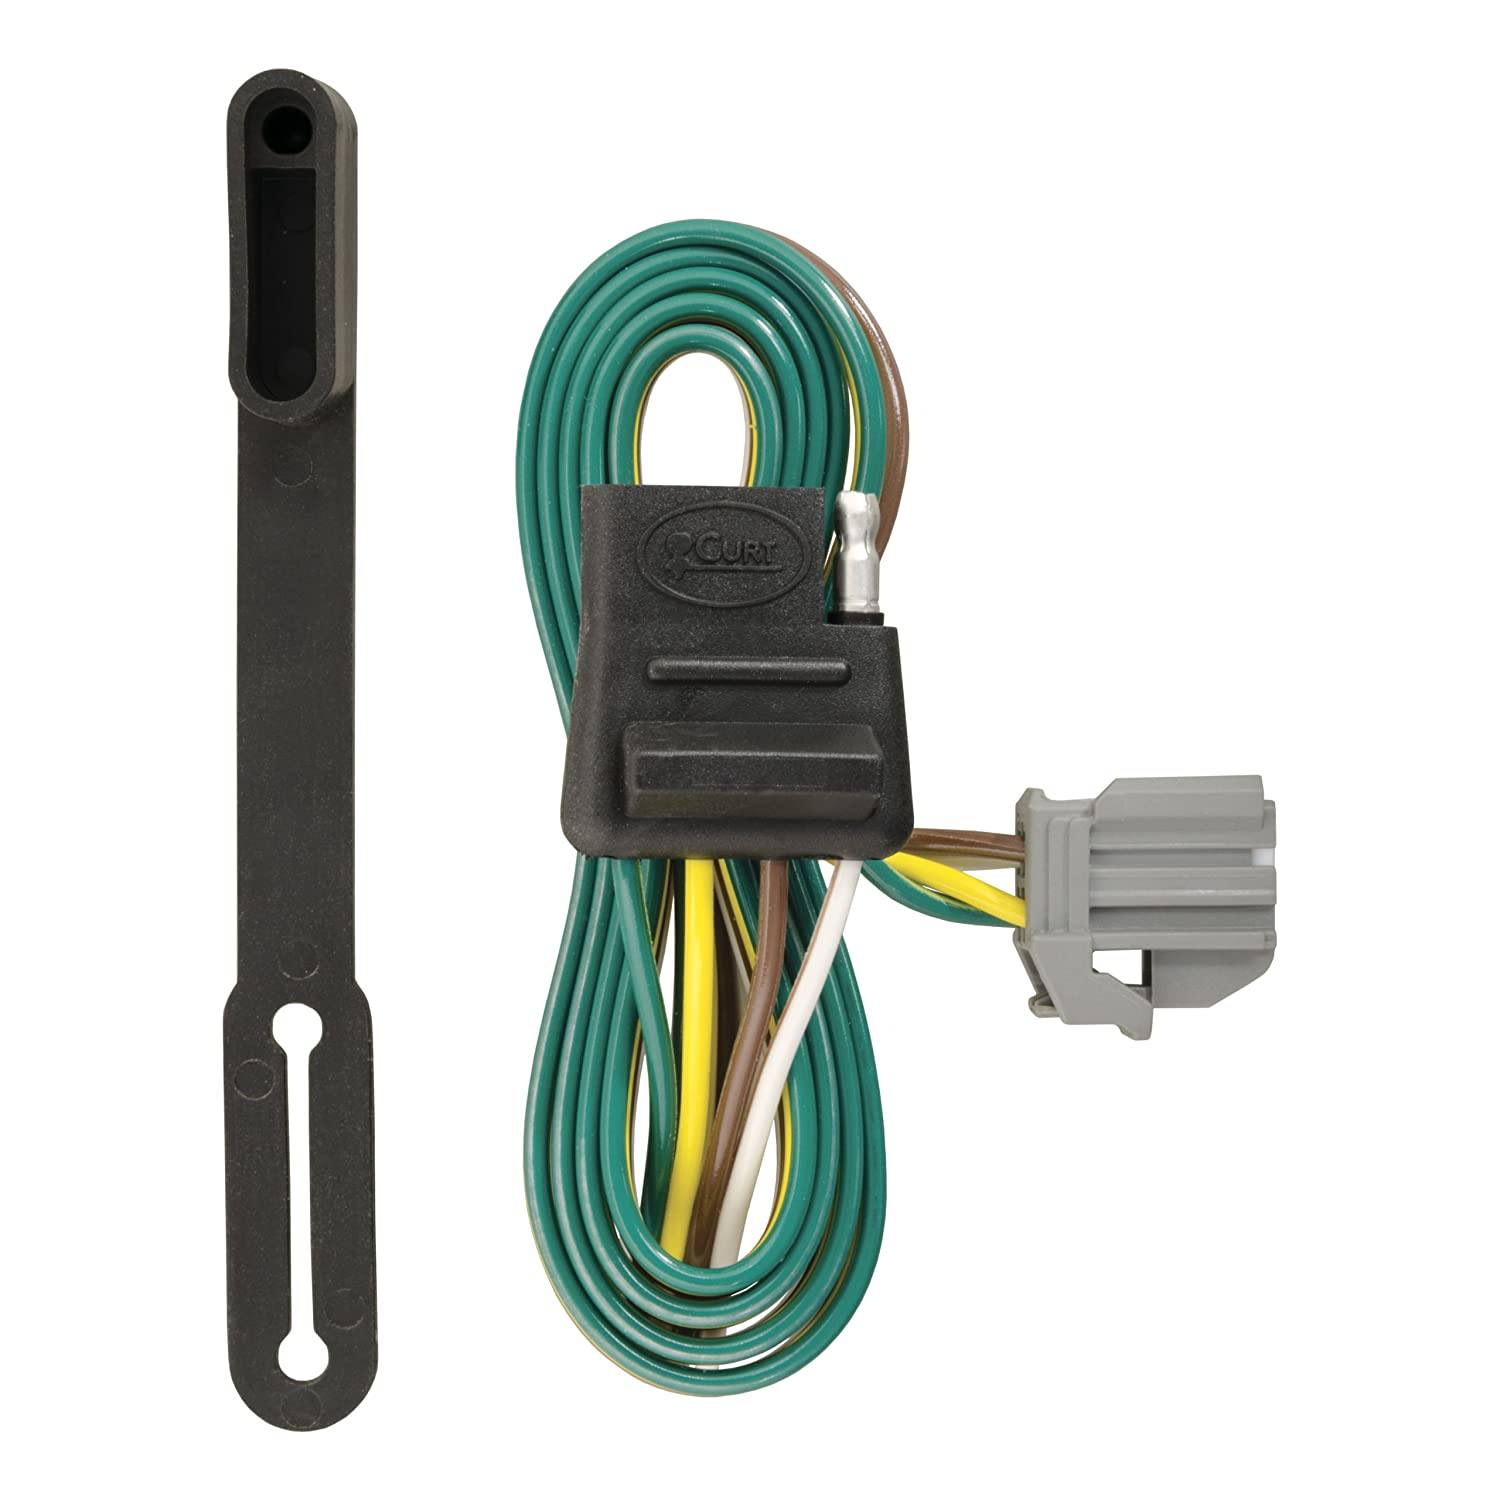 amazon com curt 56210 custom wiring connector automotive rh amazon com gm wiring connectors GMC Wiring Harness Diagram